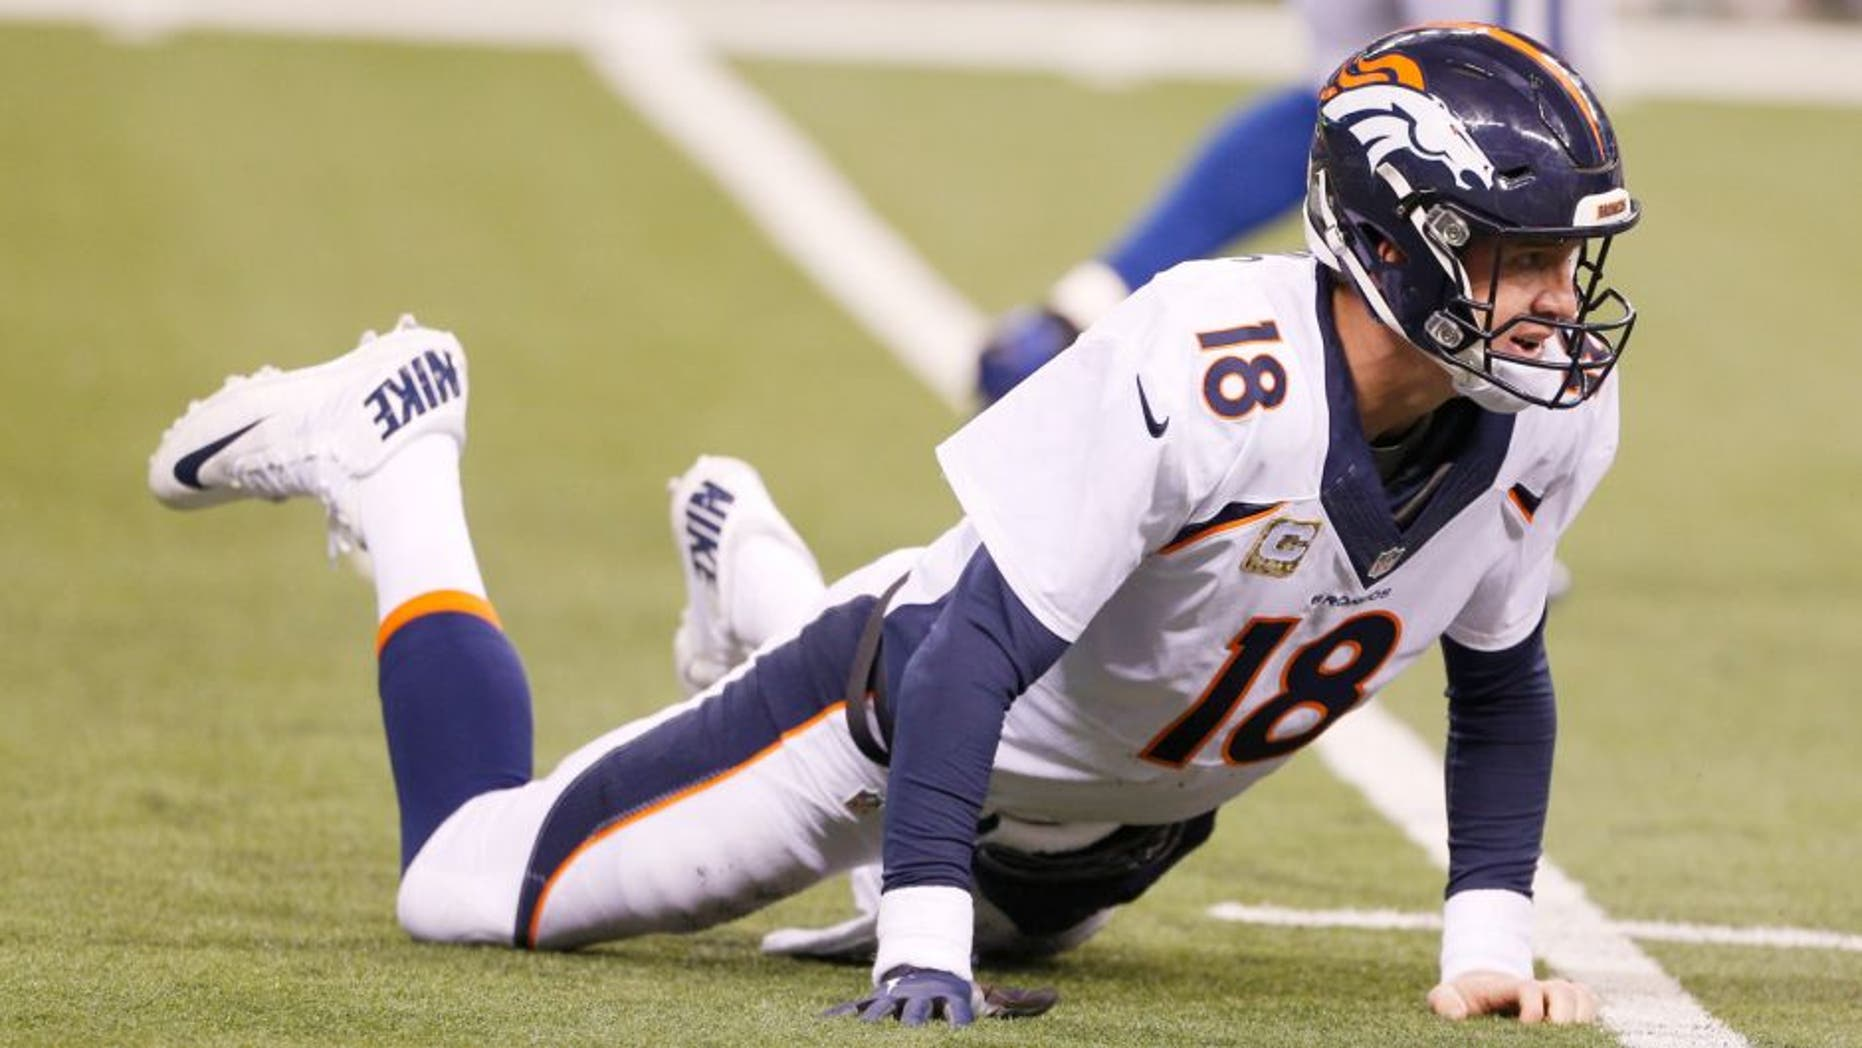 Nov 8, 2015; Indianapolis, IN, USA; Denver Broncos quarterback Peyton Manning (18) looks up while on the ground after throwing an interception against the Indianapolis Colts at Lucas Oil Stadium. Indianapolis defeats Denver 27-24. Mandatory Credit: Brian Spurlock-USA TODAY Sports